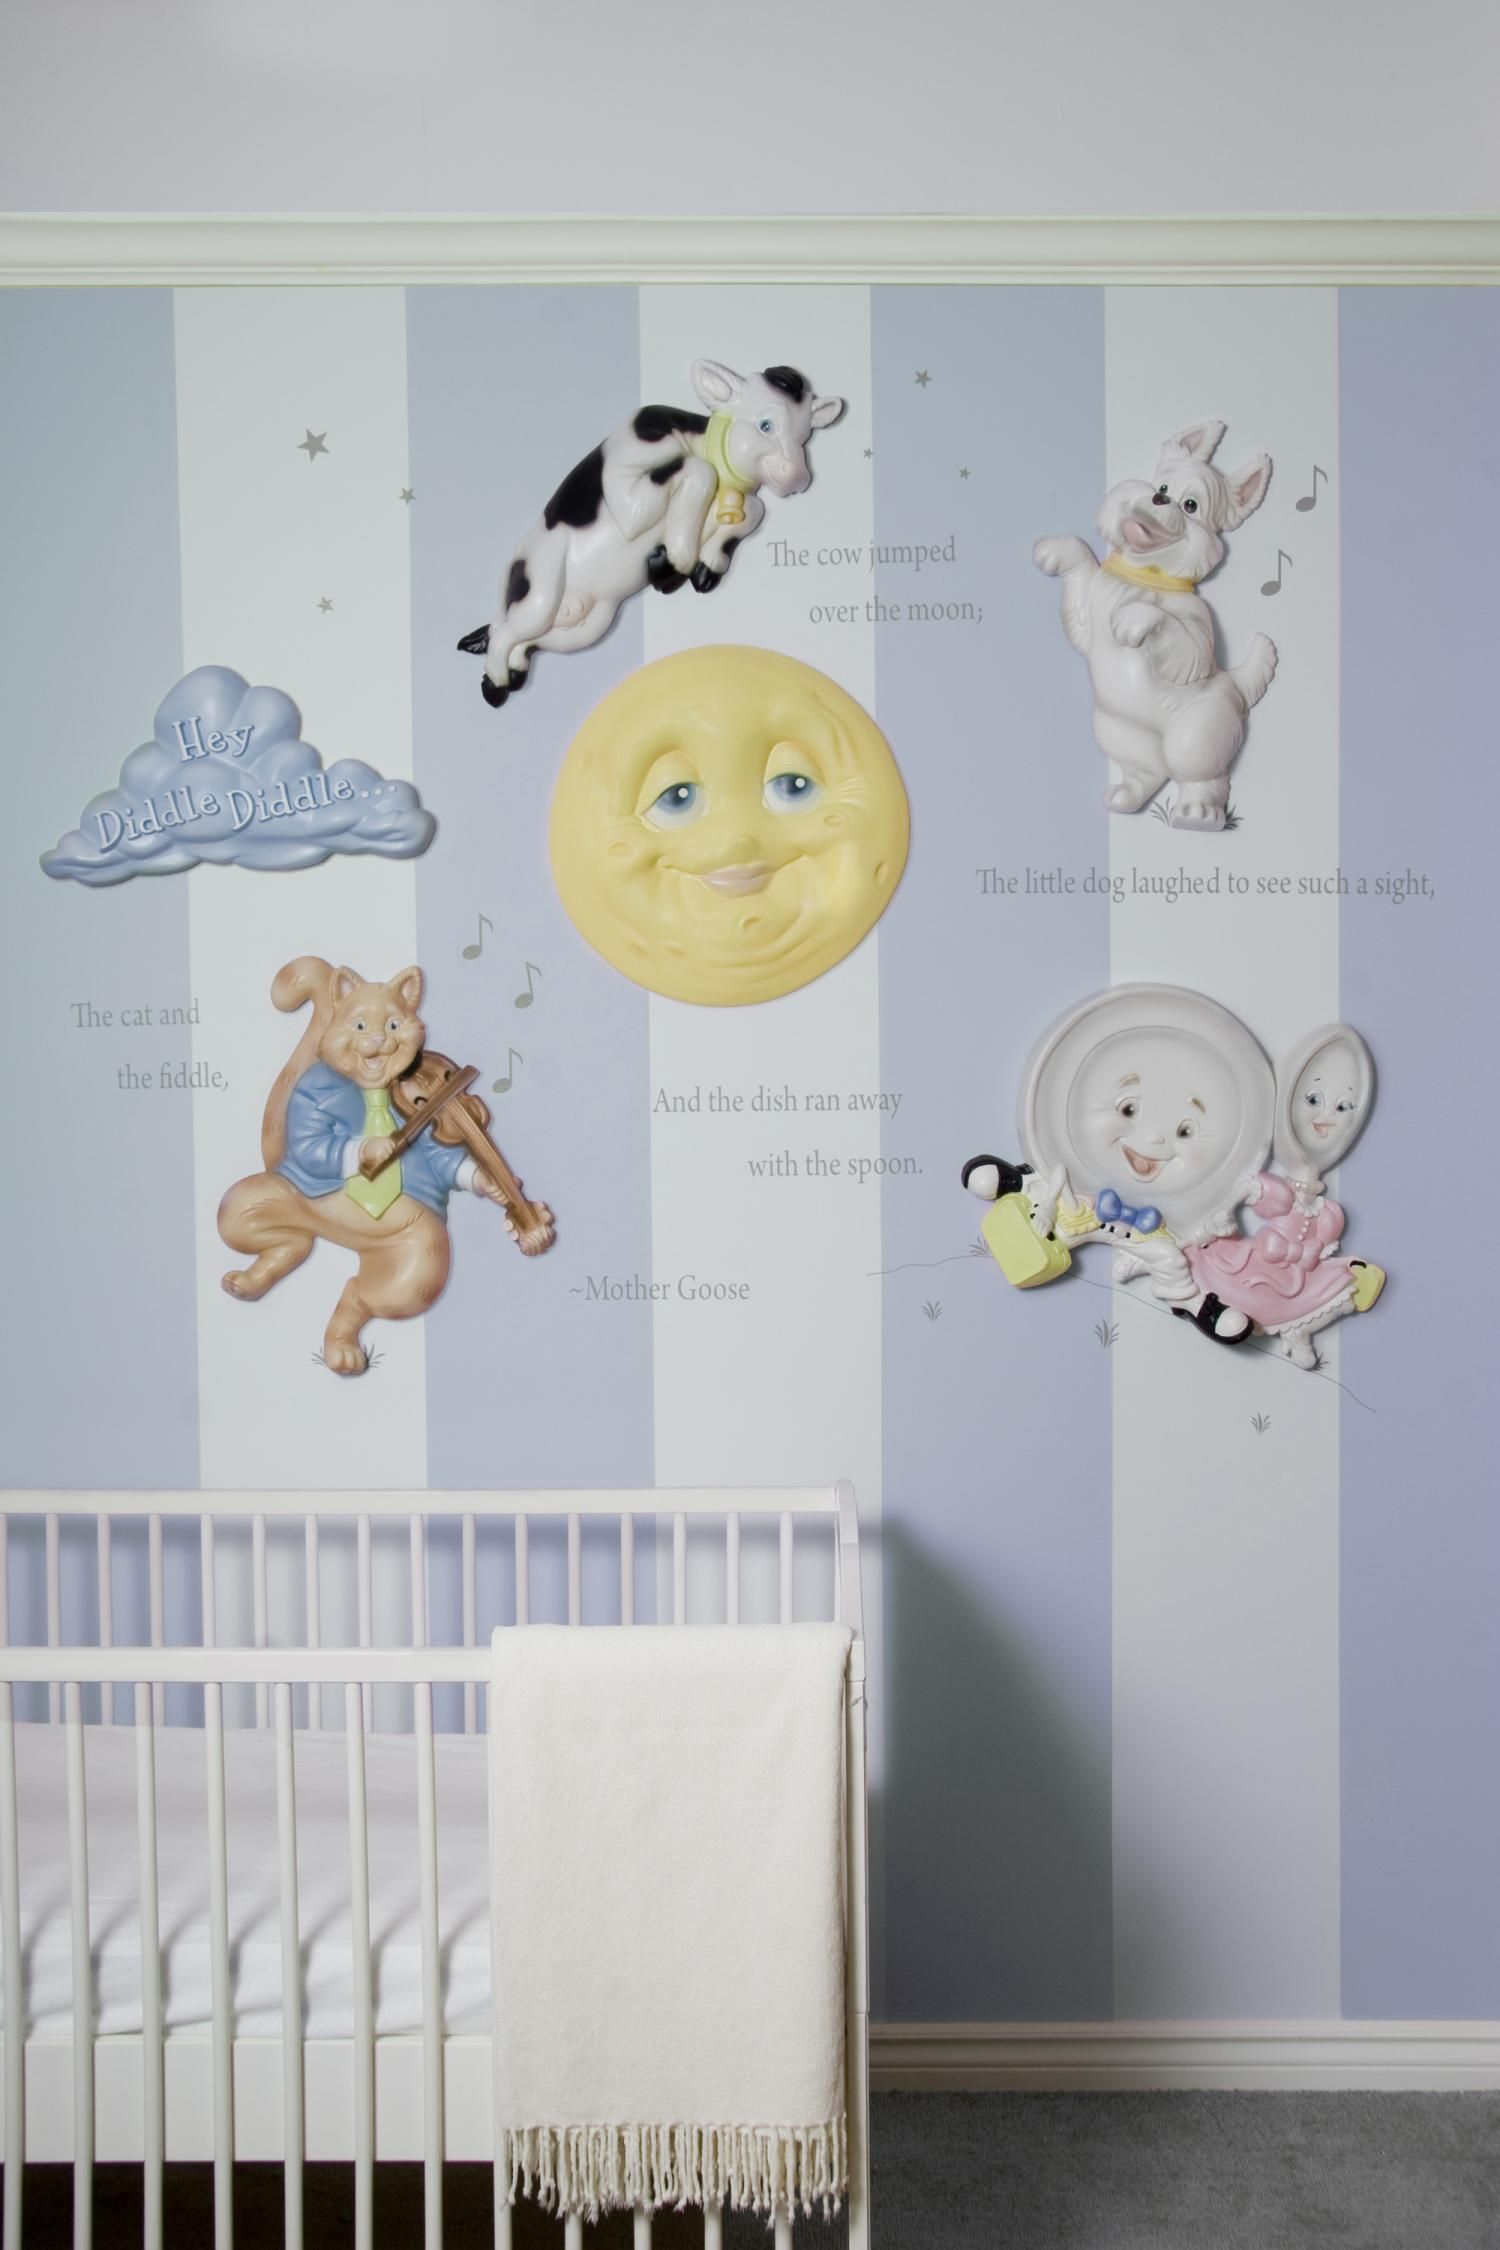 Mother goose nursery rhymes 3d wall art decor by beetling design php grandkids pinterest - Baby jungenzimmer ...